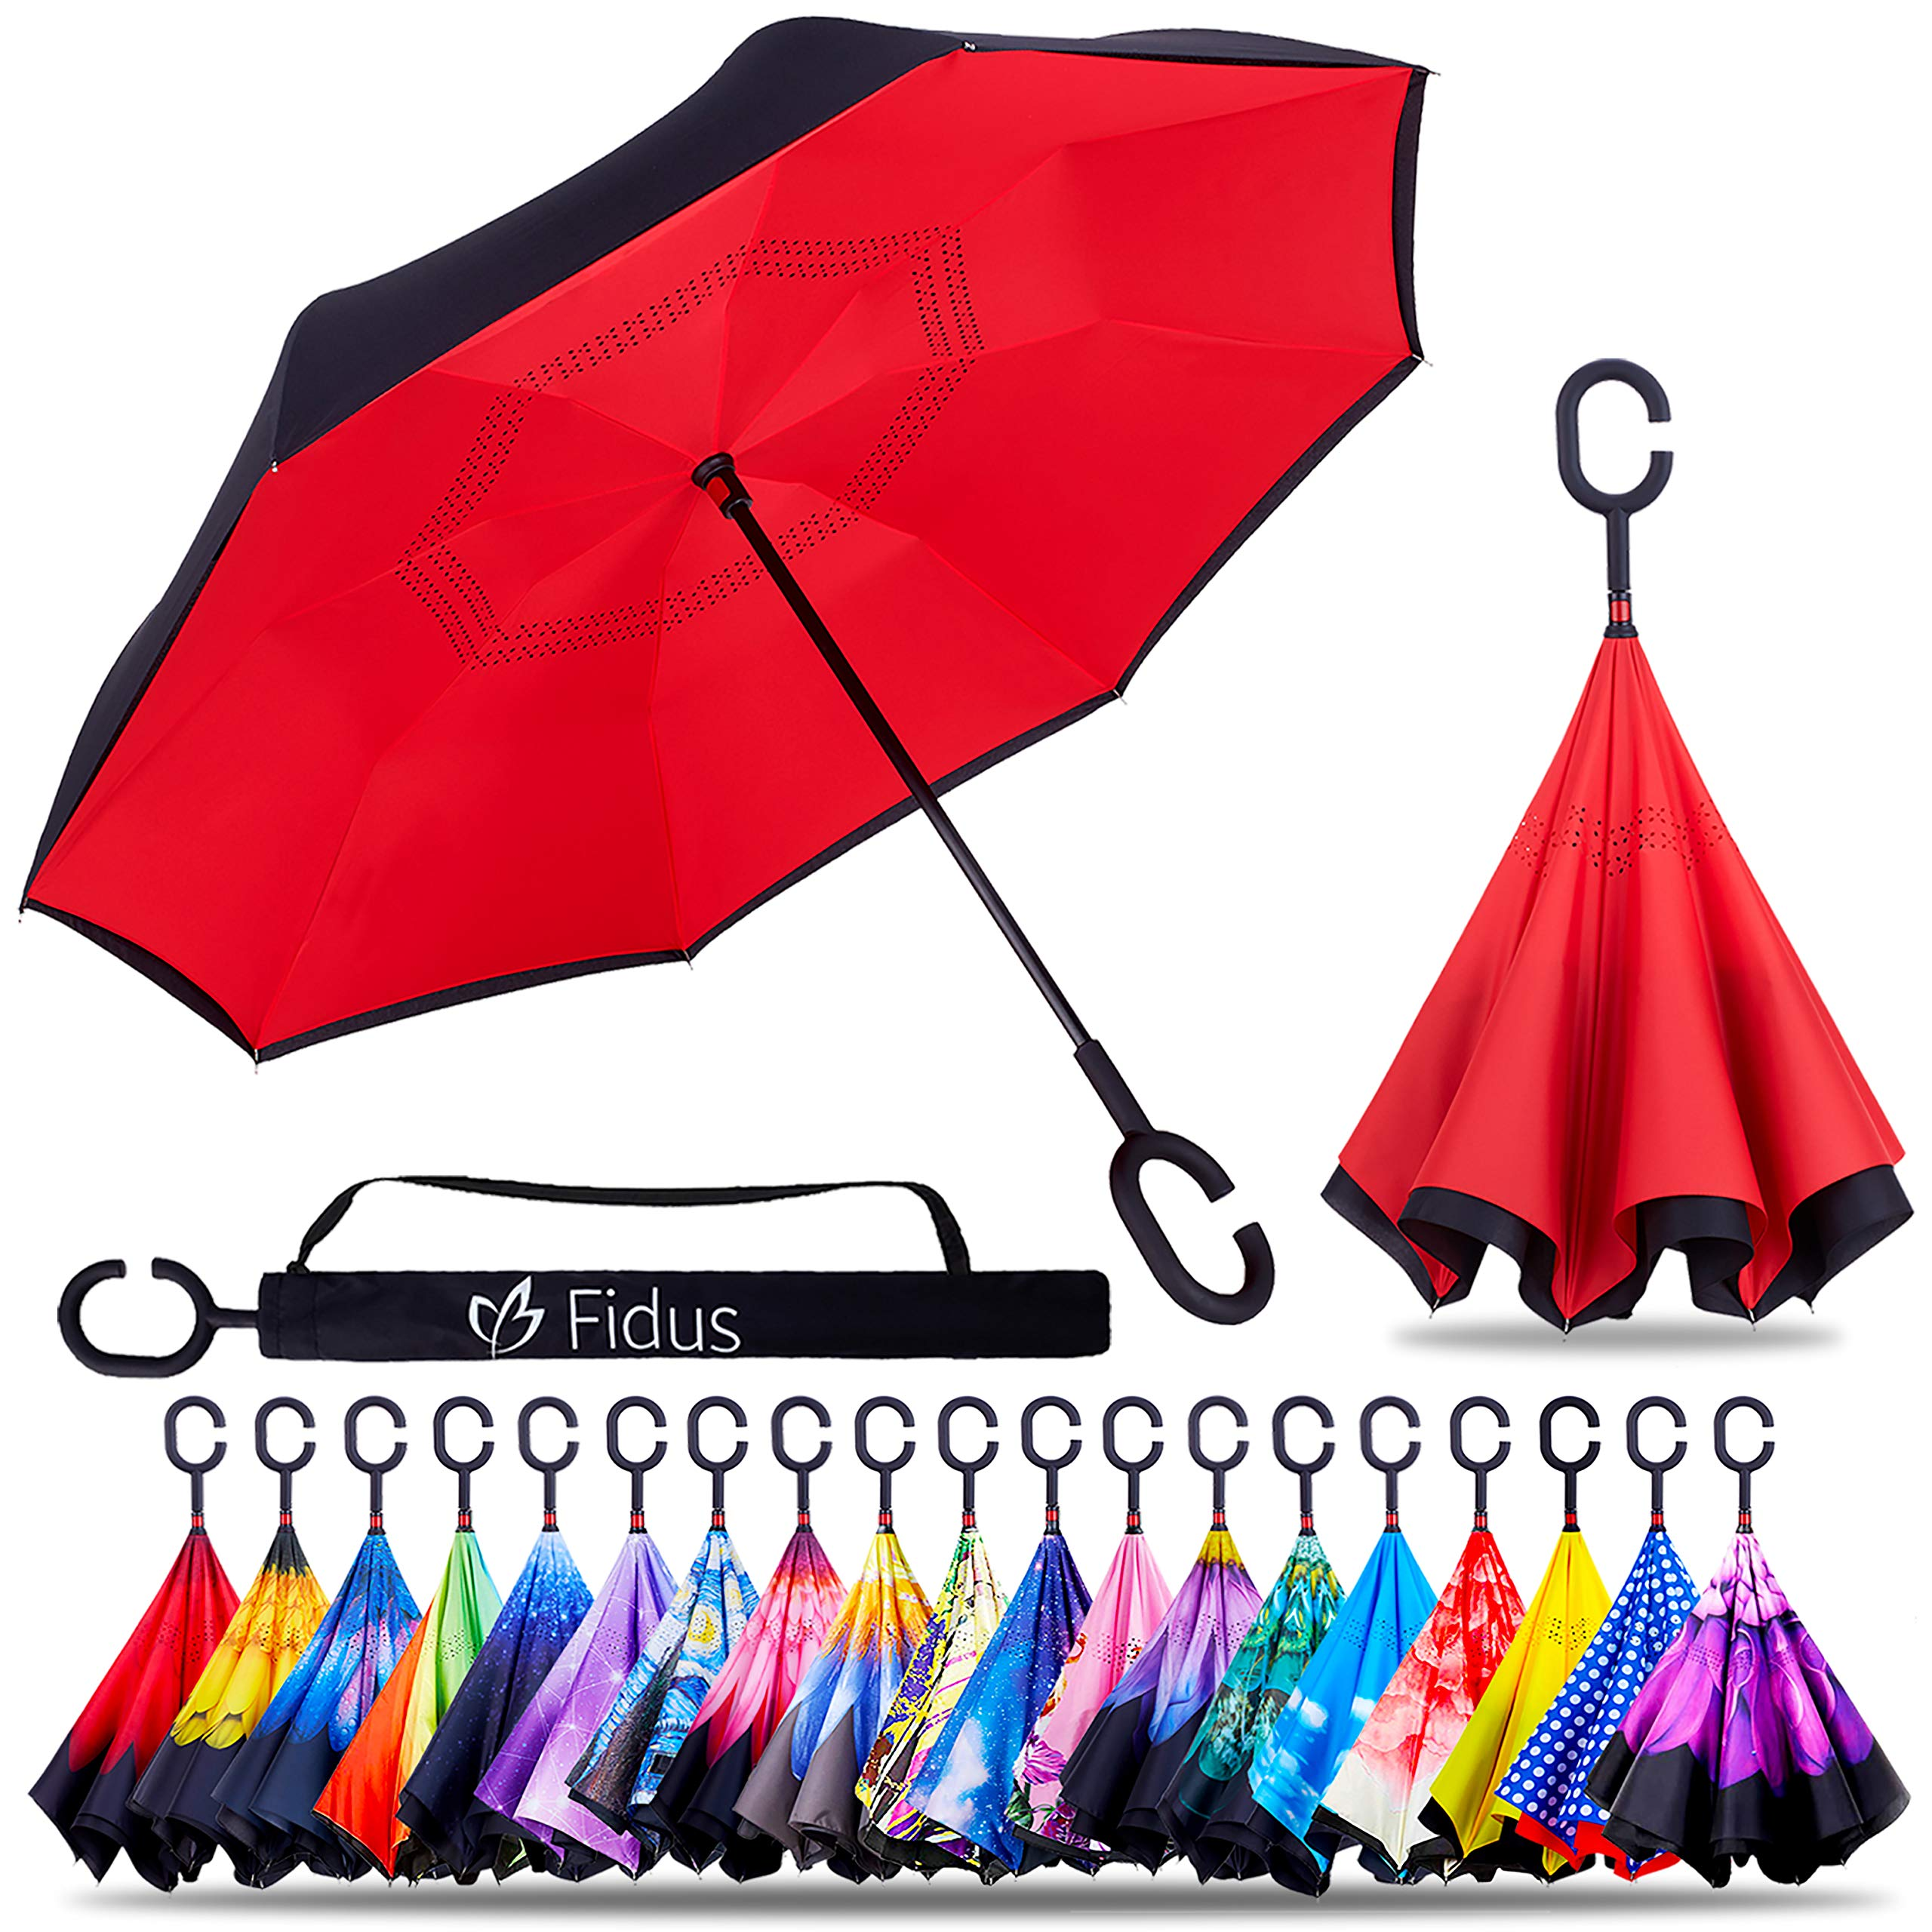 Fidus Double Layer Inverted Reverse Umbrella, Winproof Waterproof Folding UV Protection Self Stand Upside Down Large Car Rain Golf Outdoor Rain Umbrella with C-Shaped Handle for Men Women(Red)